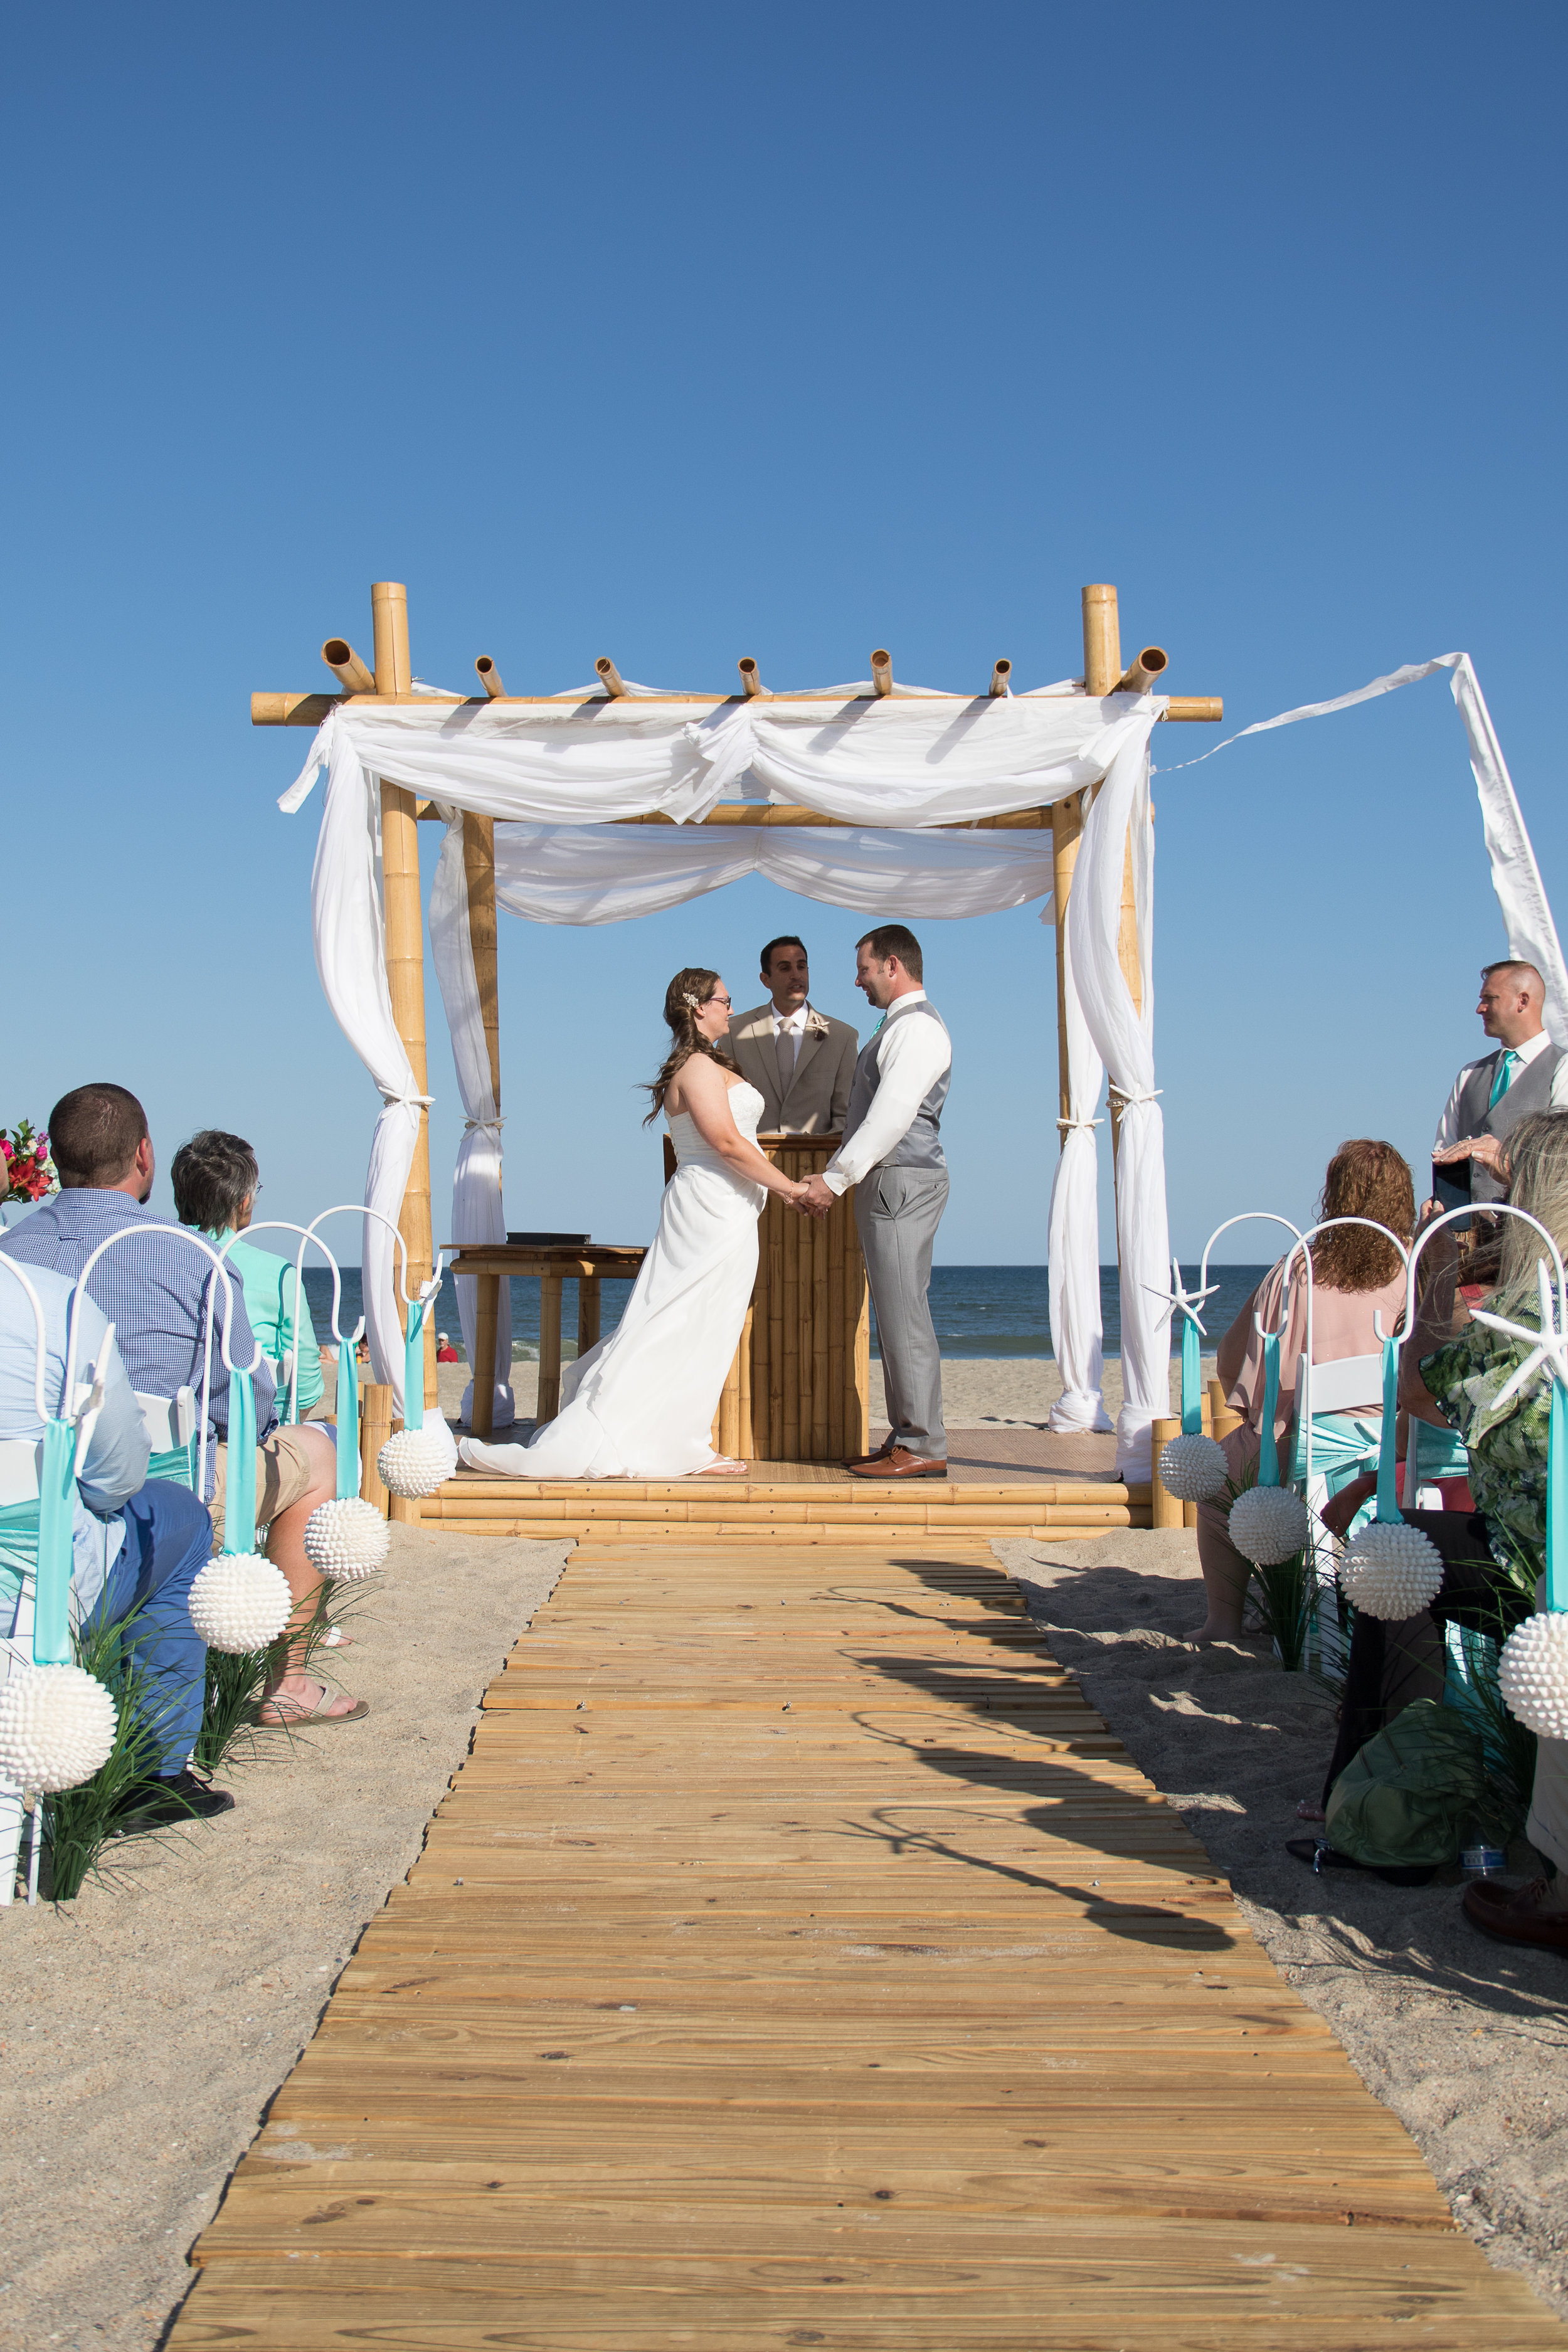 - Ceremony in progress at Fort Fisher, NC Bride and groom at alter while officiant conducts ceremony under a bamboo arbor, ocean in the background. Billy Beach Photography.